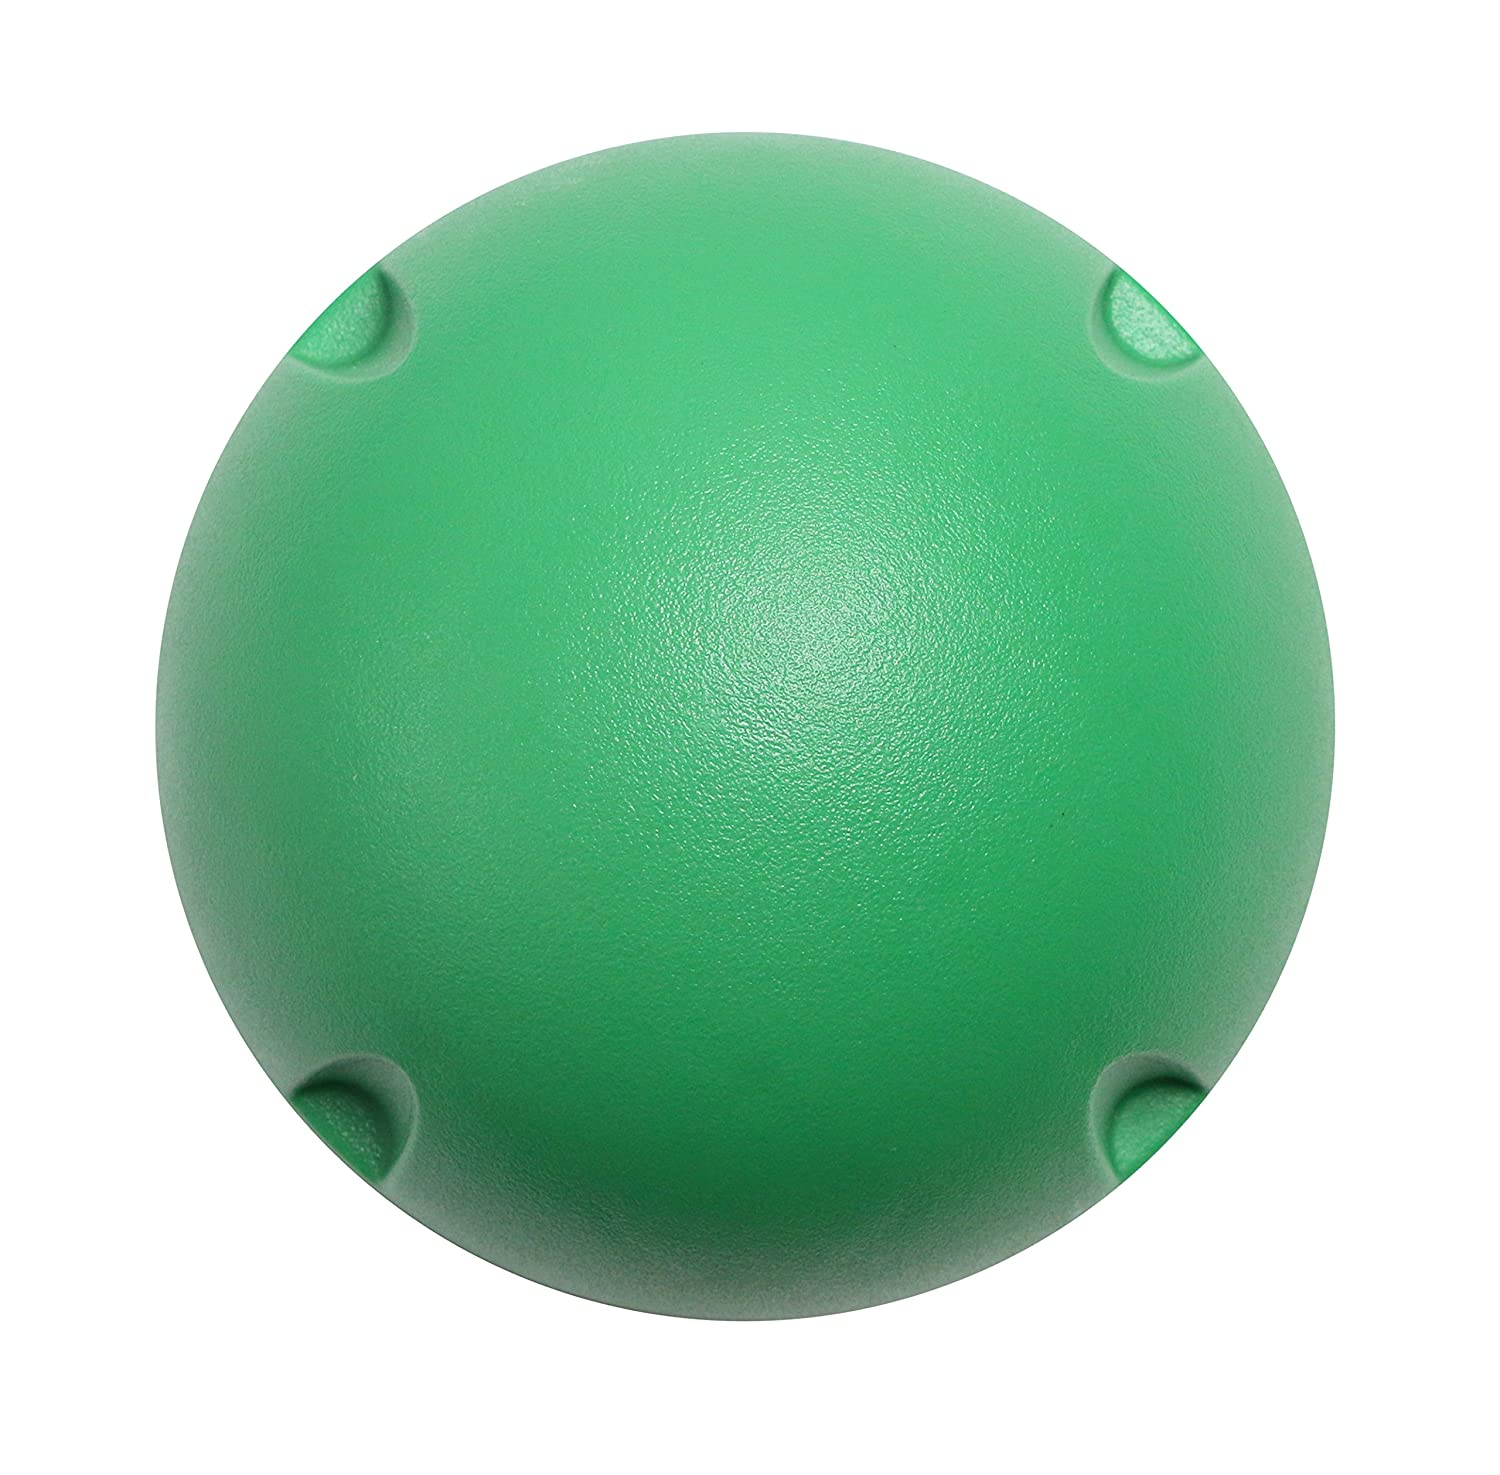 Max 57% OFF Ranking TOP12 CanDo 10-1762 MVP Balance System Level 3 Ball Green